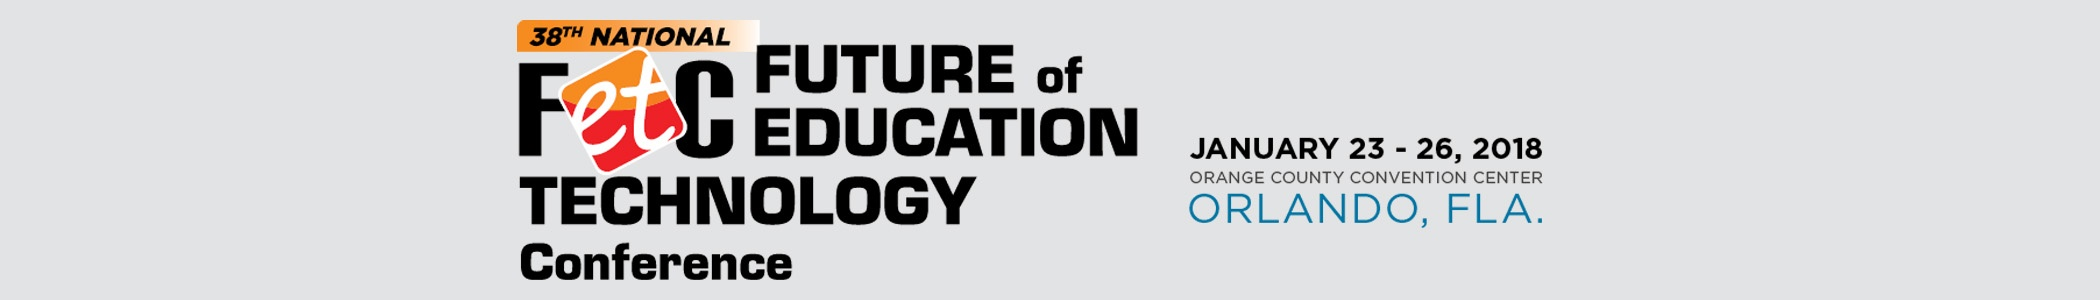 Future of Education Technology Conference 2018